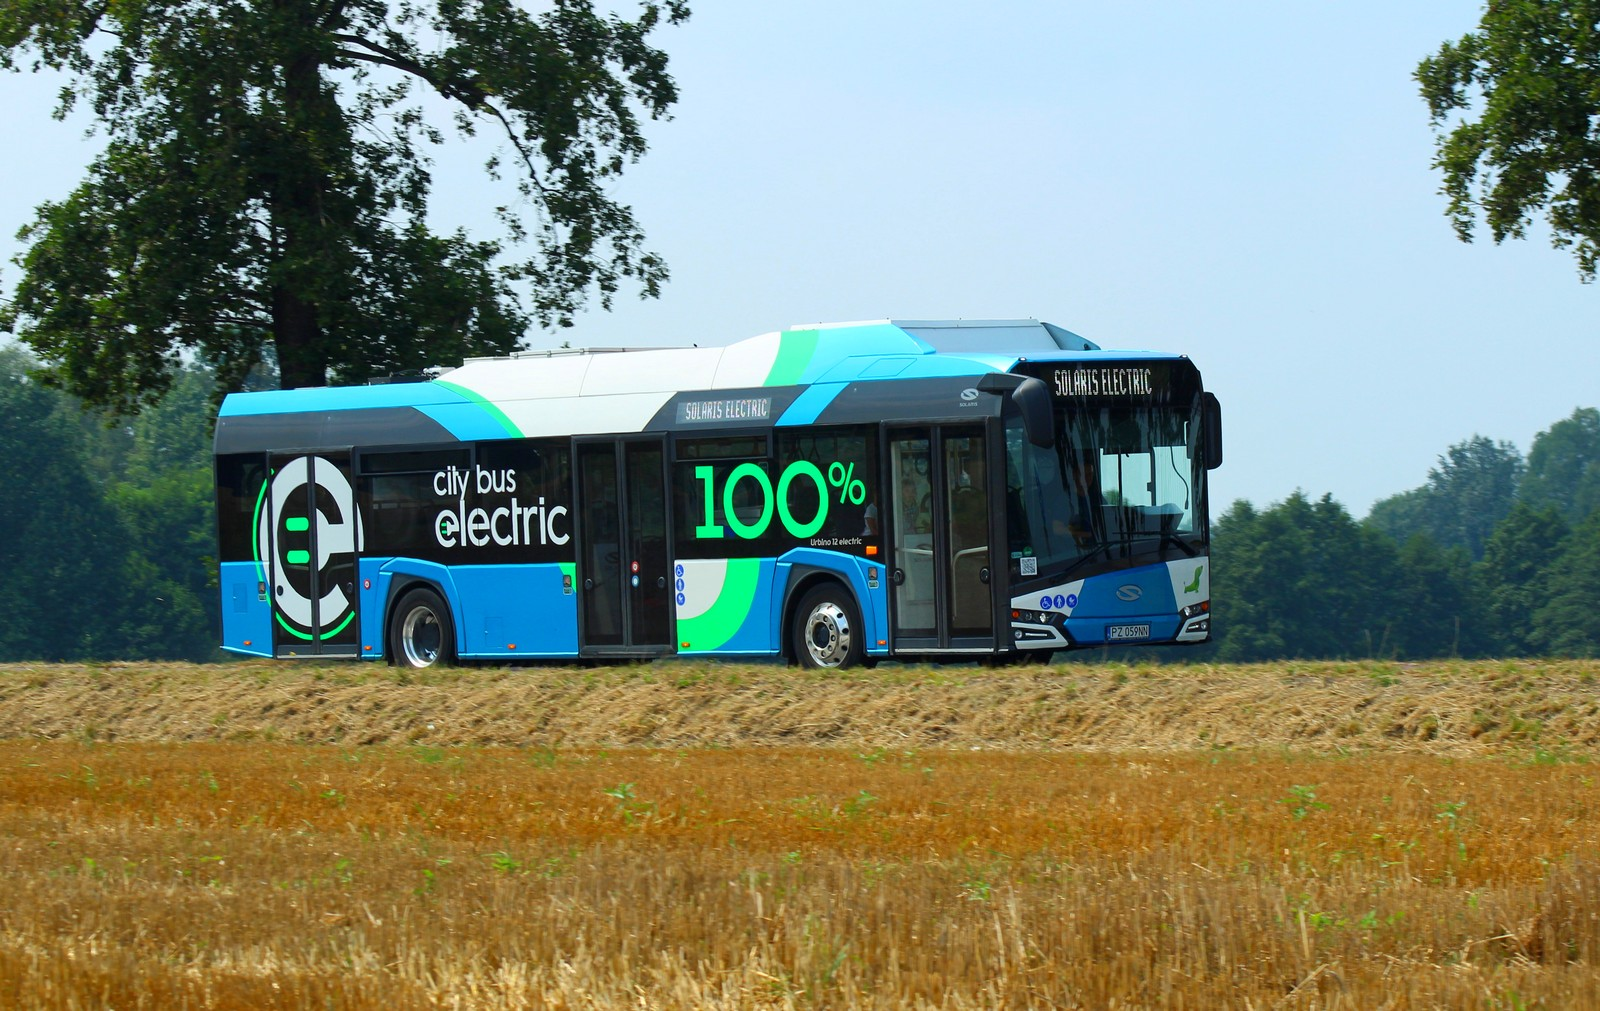 solaris urbino electric bus estonia